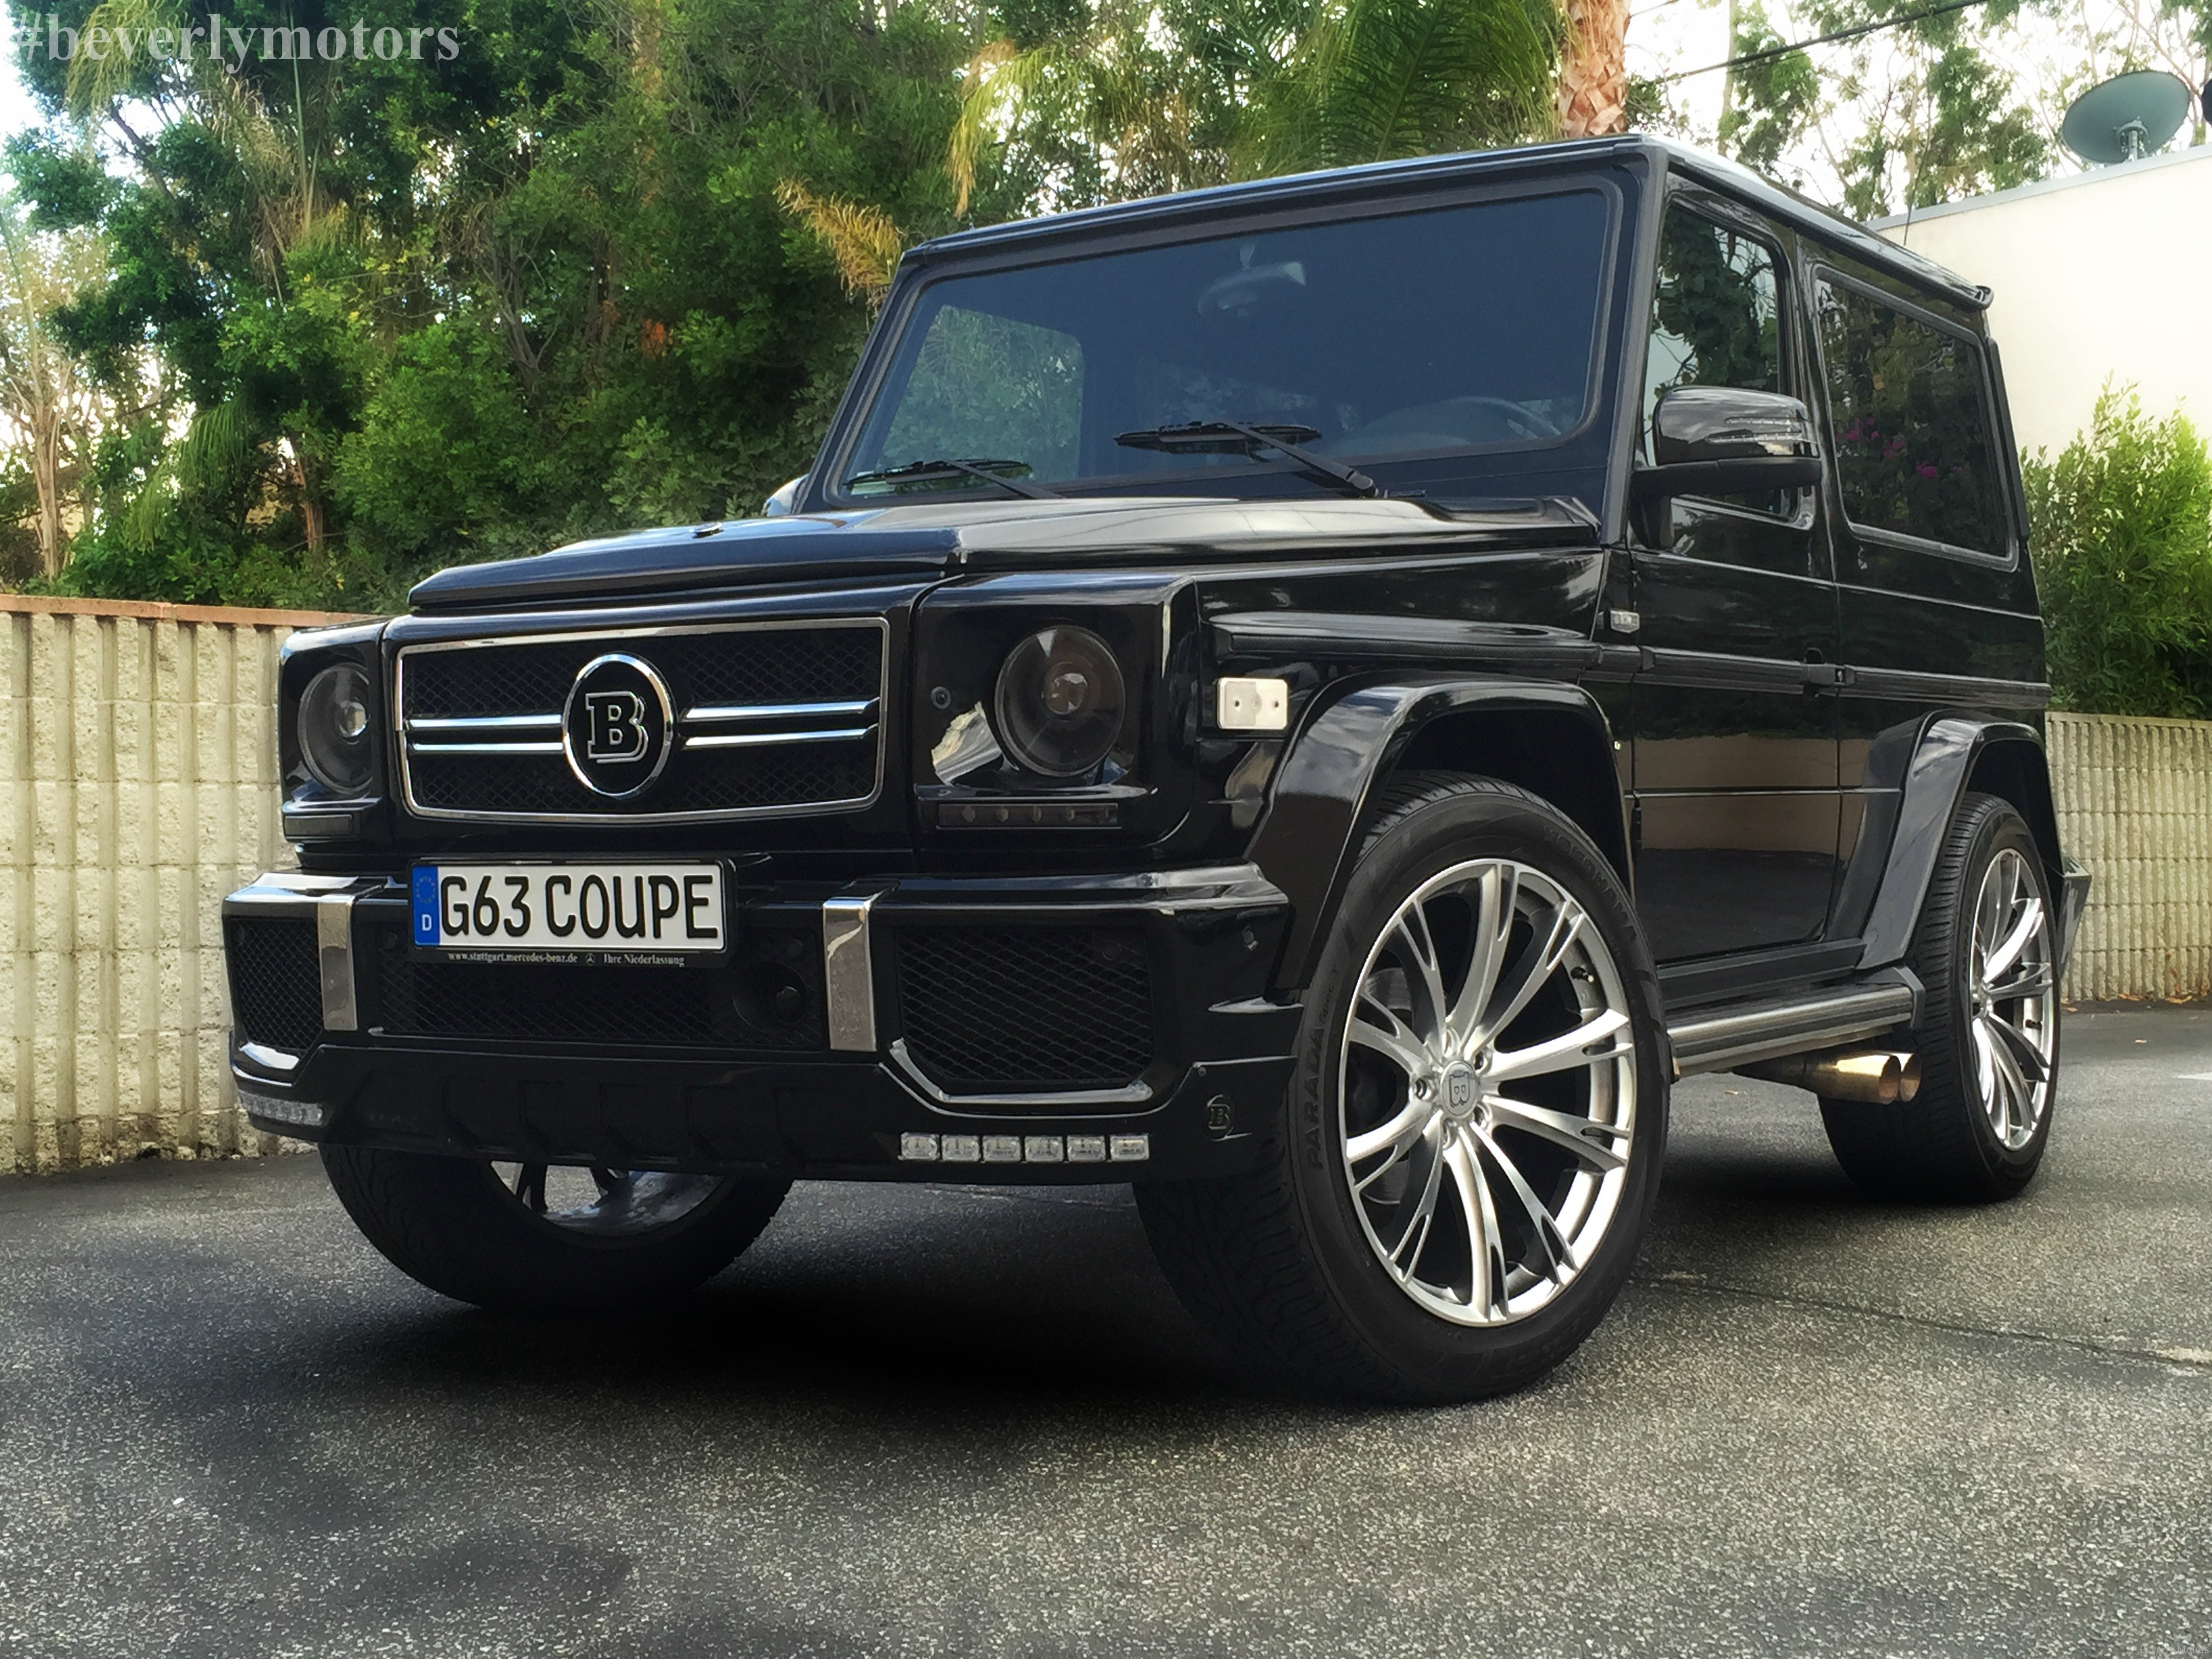 Beverly motors inc glendale auto leasing and sales new for Mercedes benz g class black